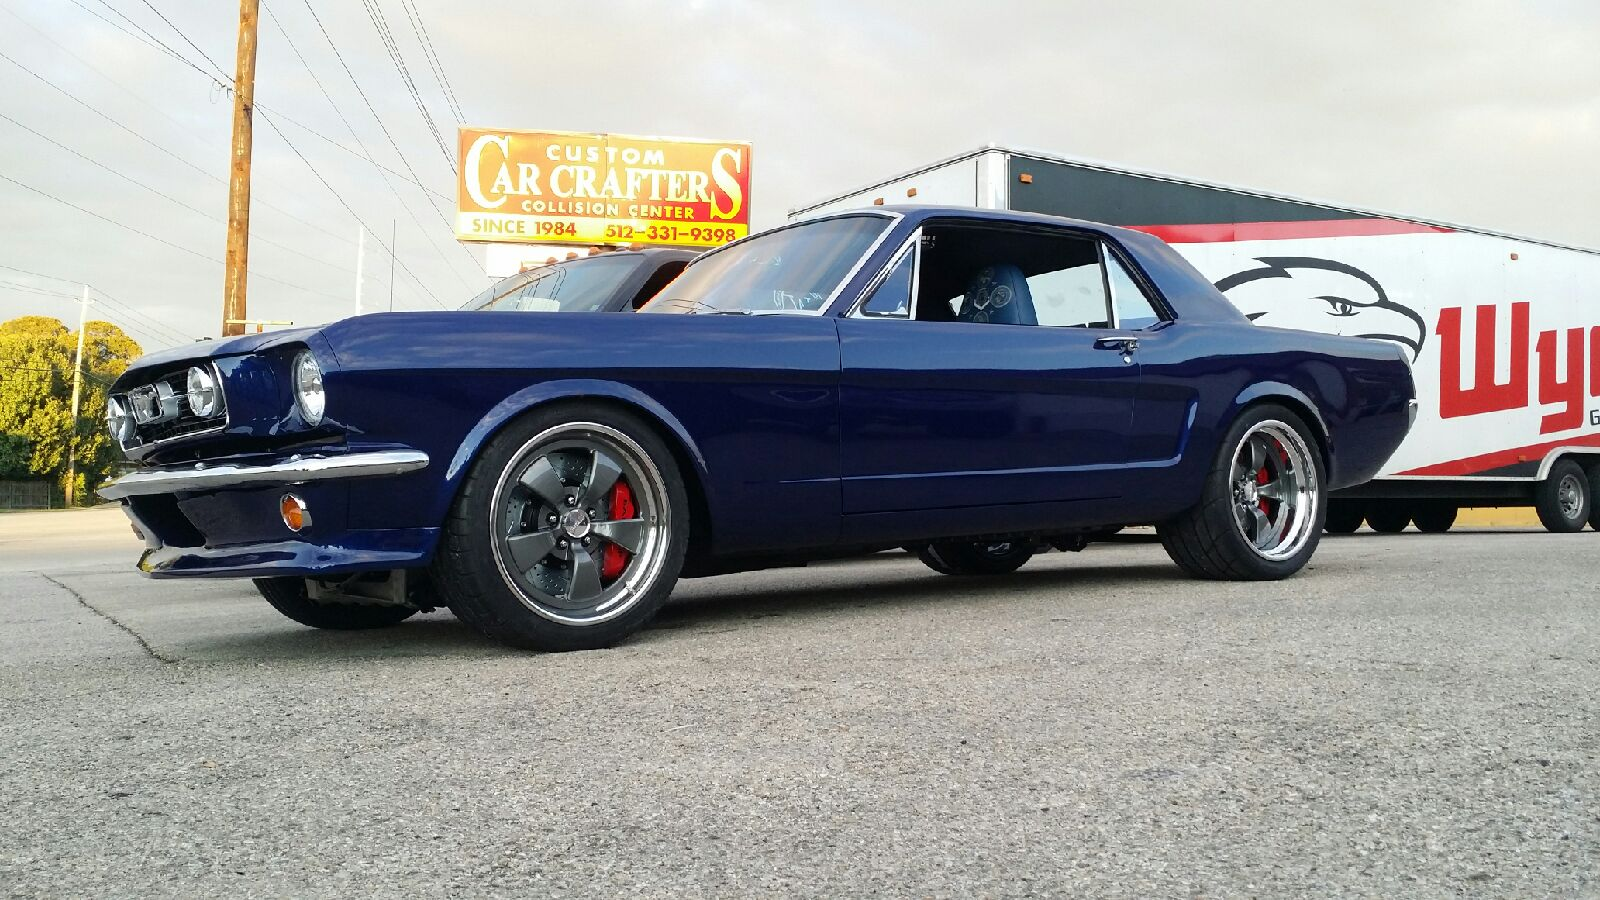 Magrabbit and austin sunshades joins forces with richard woods custom rebuild of 1966 ford mustang for 2015 sema showrichard wood kustoms sciox Choice Image